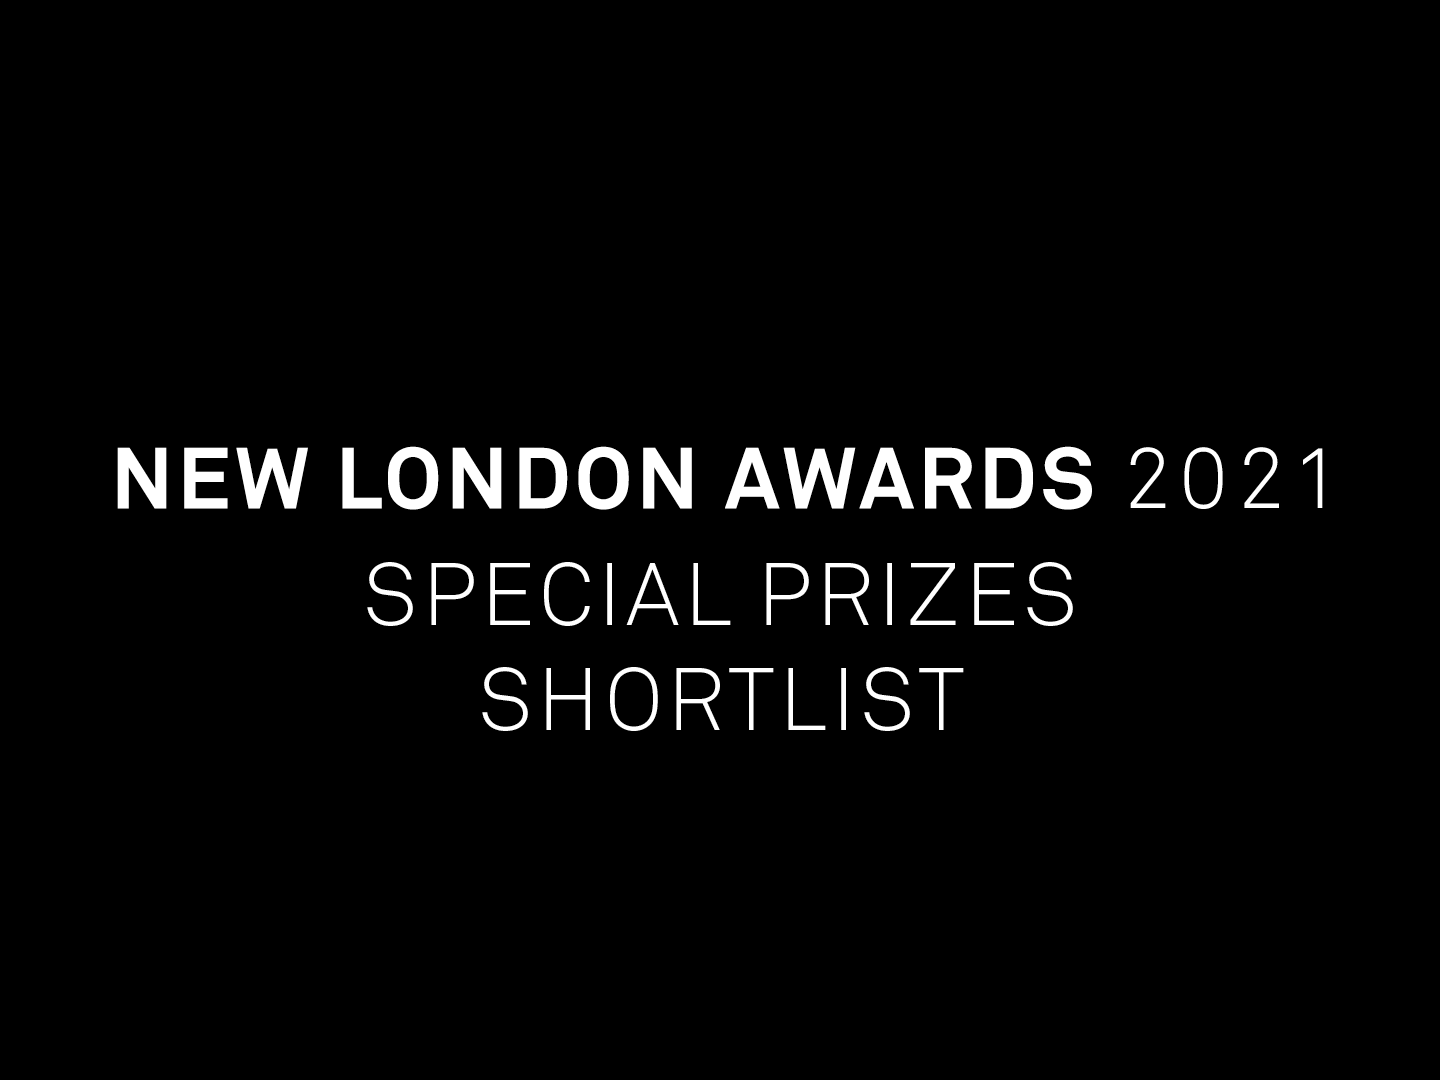 New London Awards 2021 - SPECIAL PRIZES Shortlist